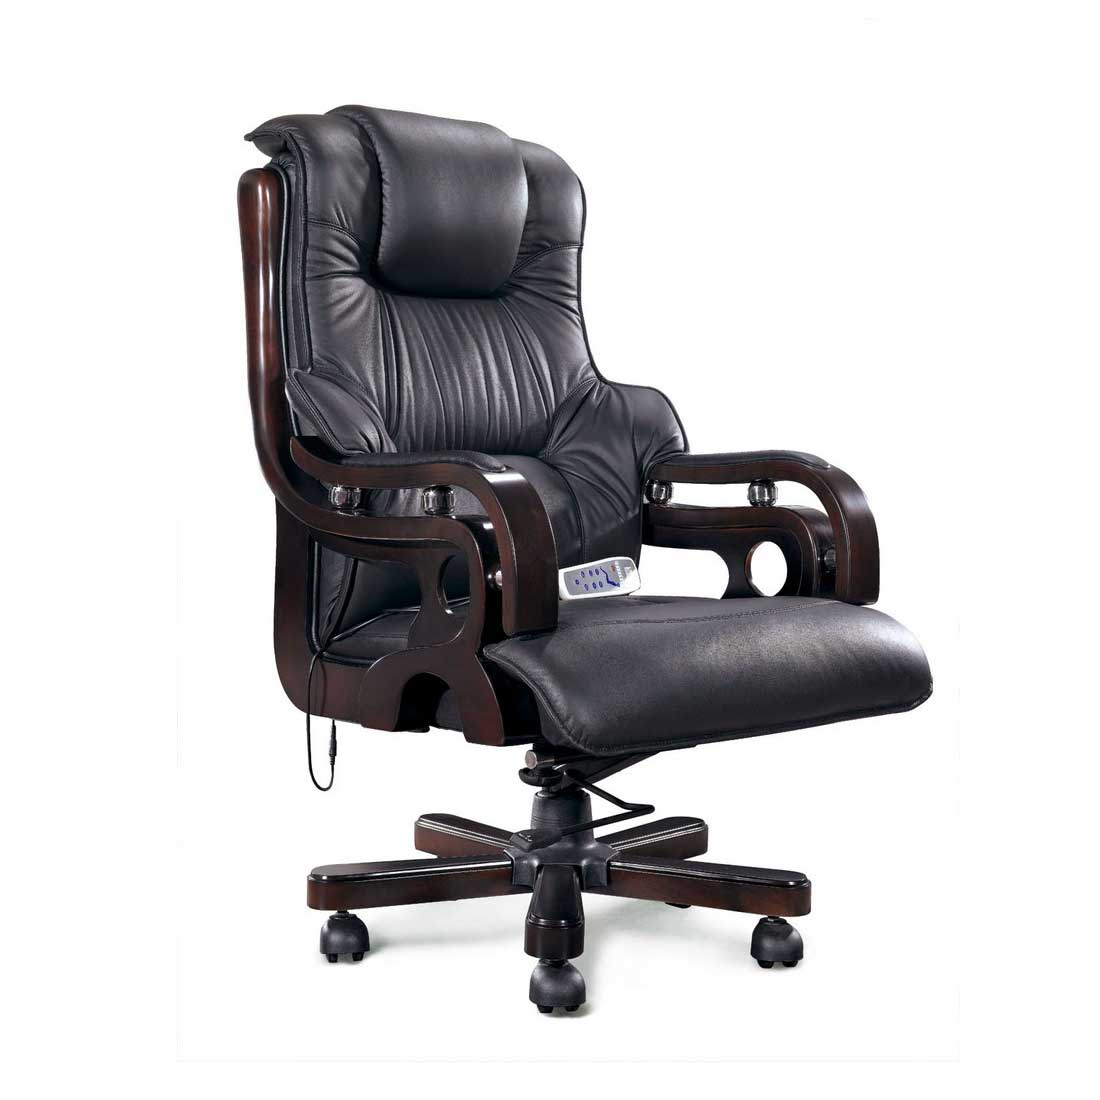 office chair moreover best executive office chair in addition office